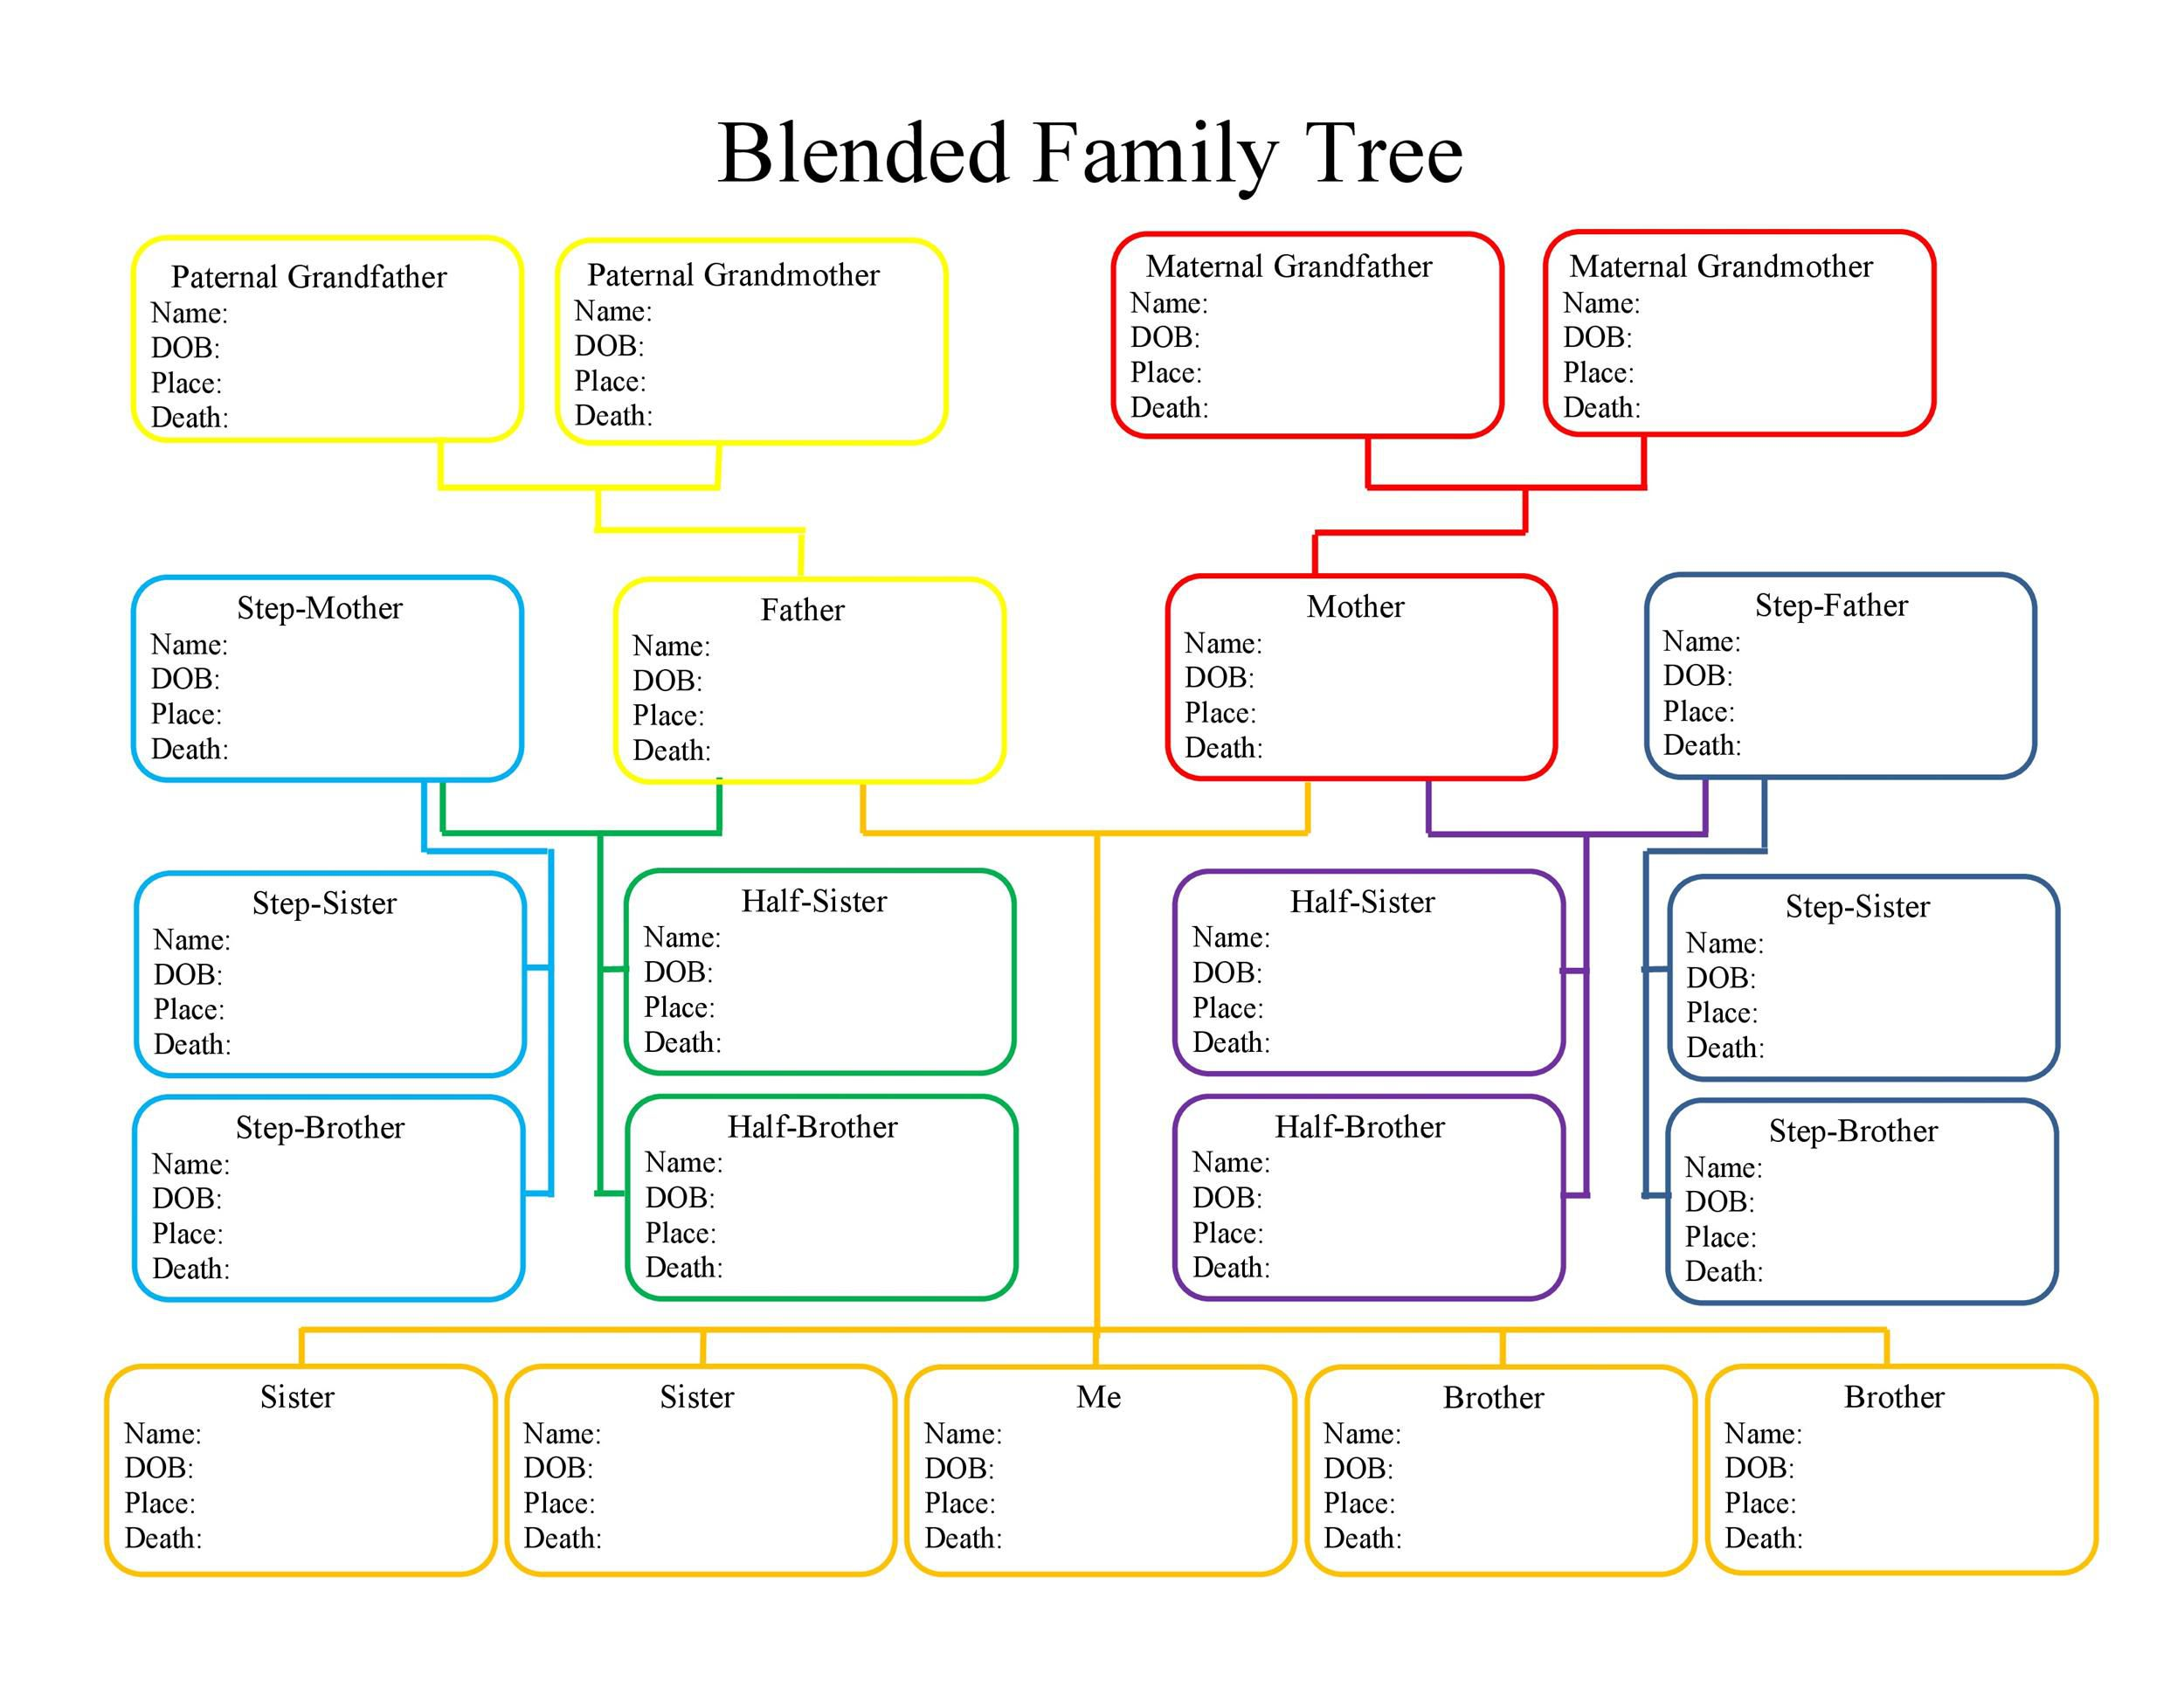 003 Remarkable Family Tree Template Word Concept  Free 2010 Doc DownloadFull